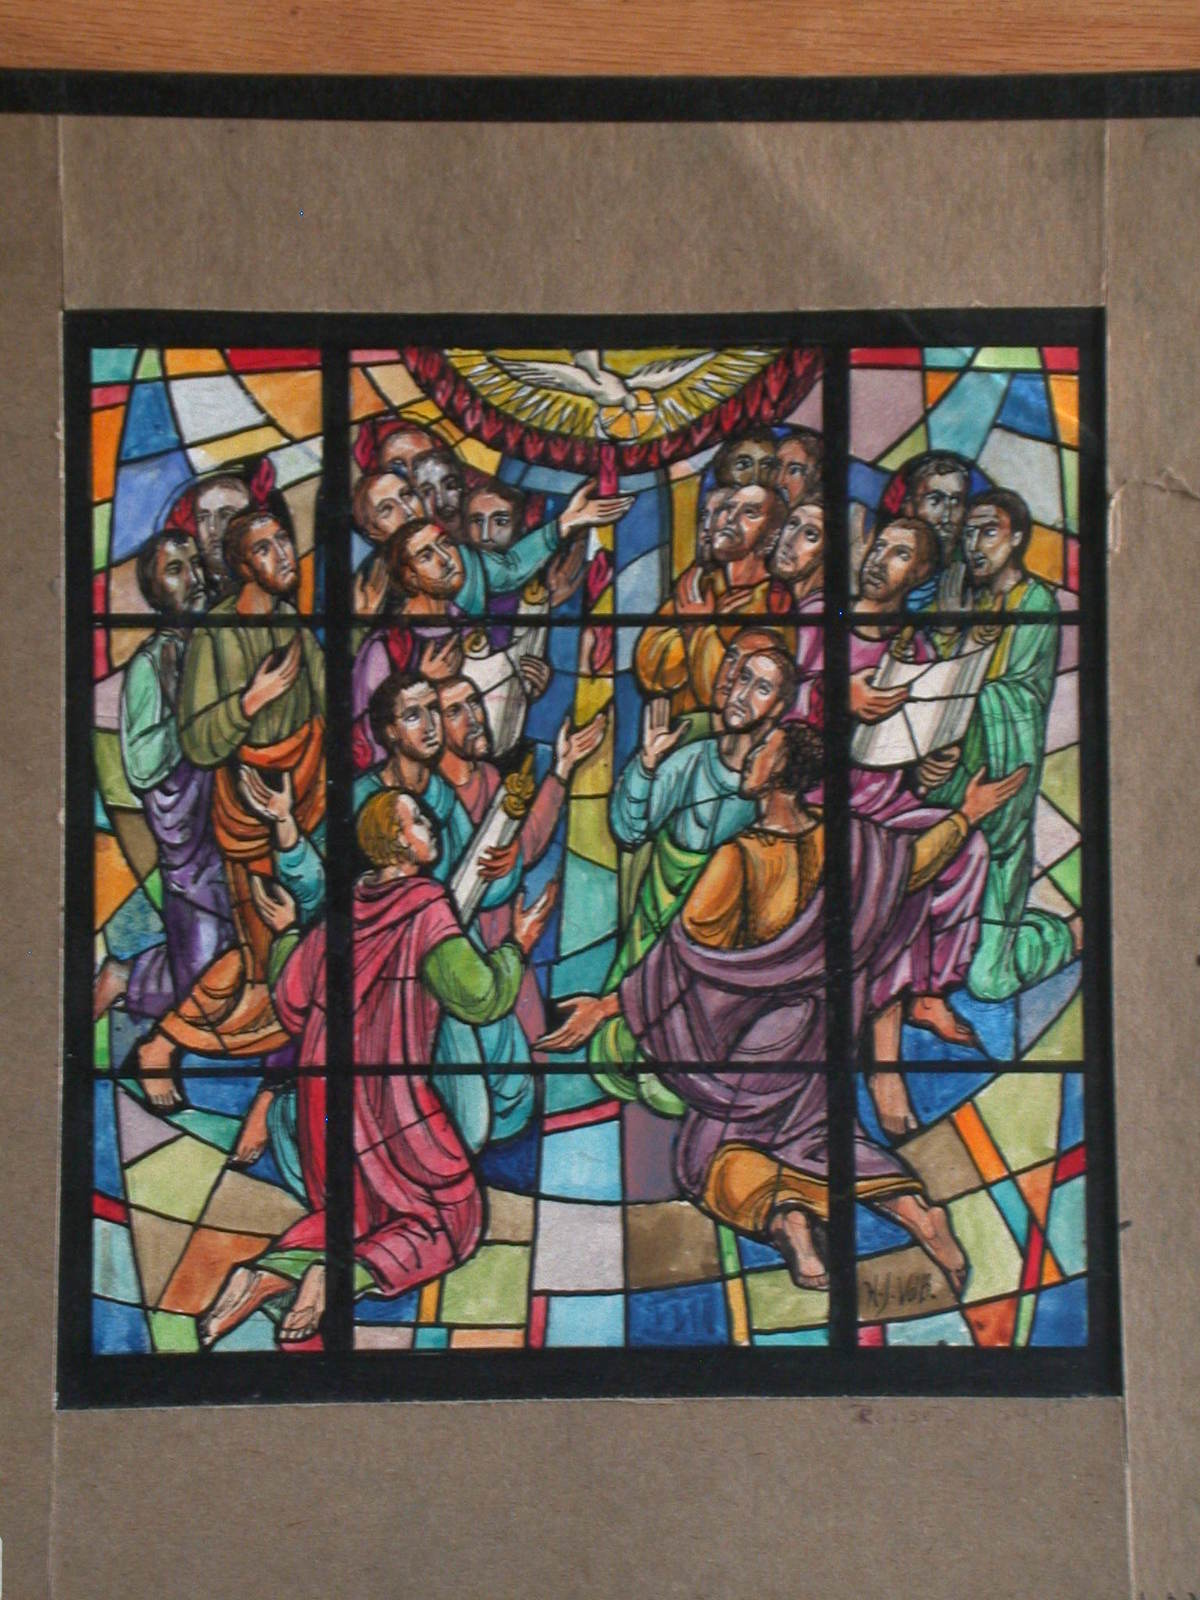 [Design drawing for stained glass window showing 22 figures kneeling, praying to dove, with flame and light for Union Methodist Church in Springhill / New Orleans, Louisiana]